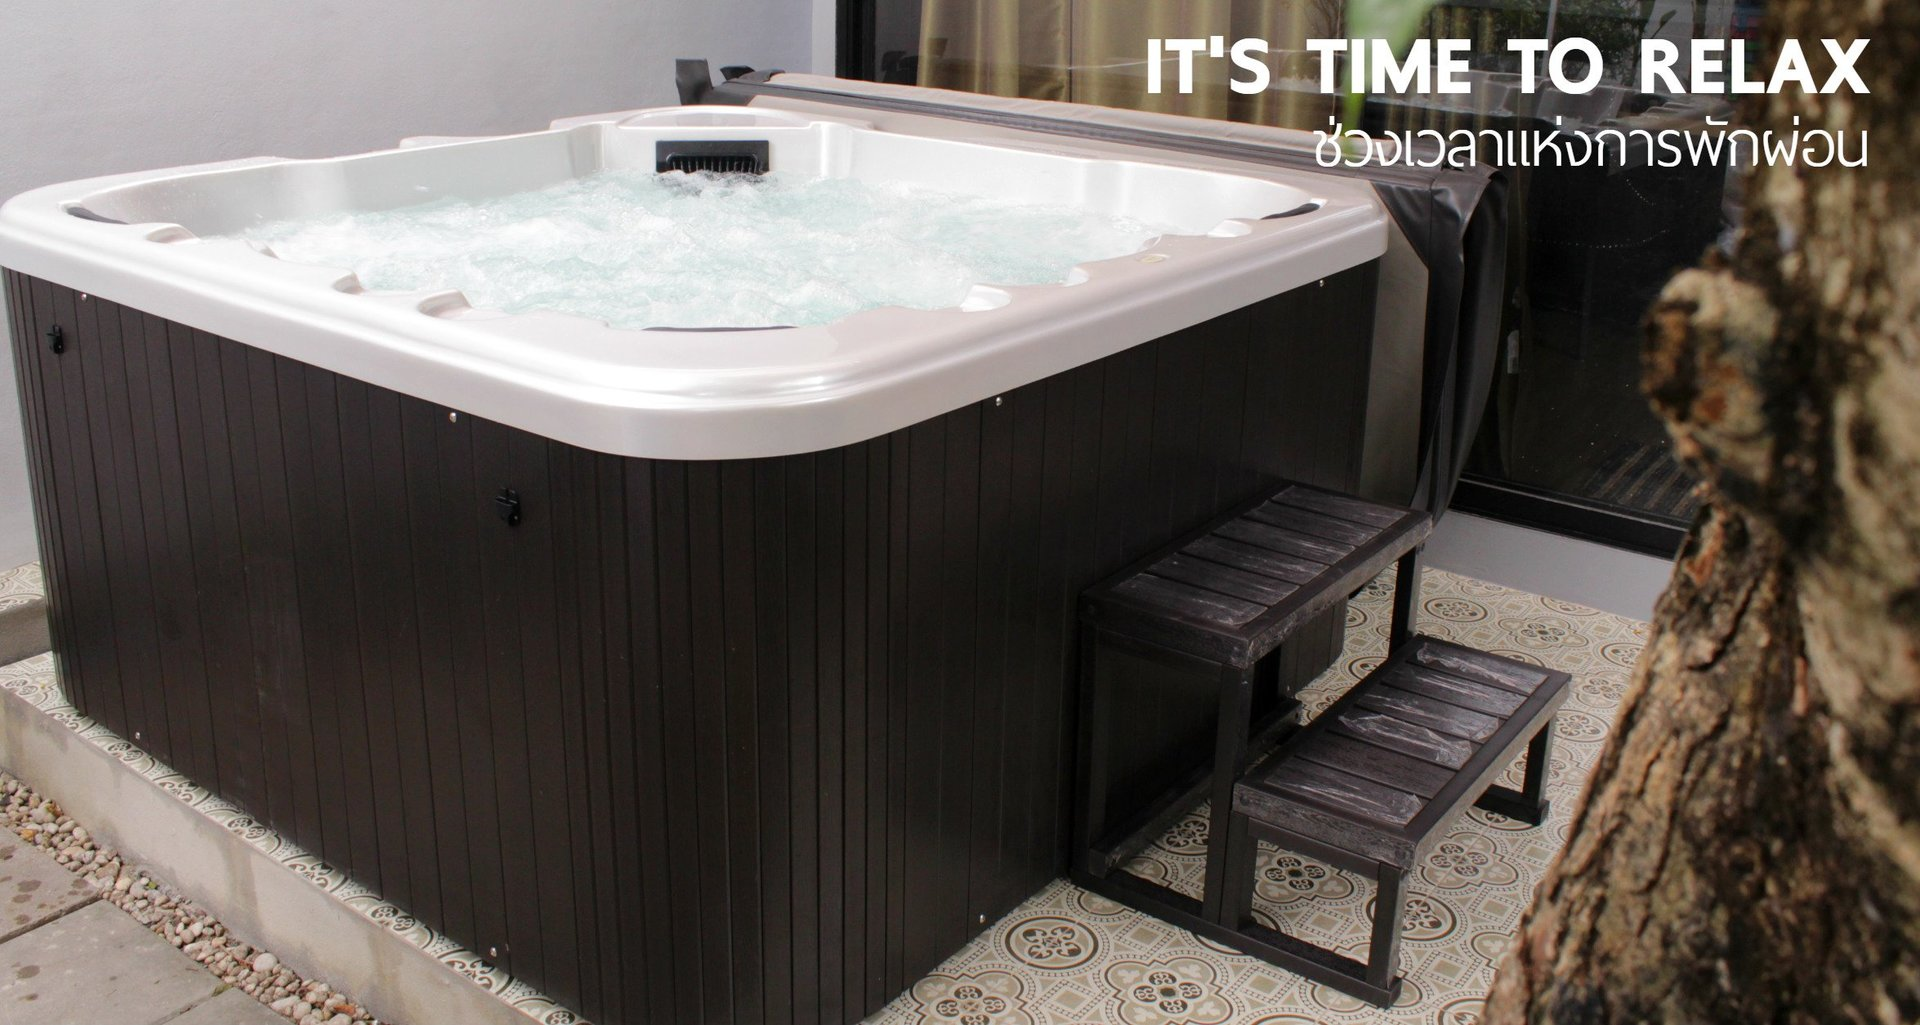 Hot tub & Outdoor Spa Shop in Thailand - THE BEST PLACE FOR RELAXATION